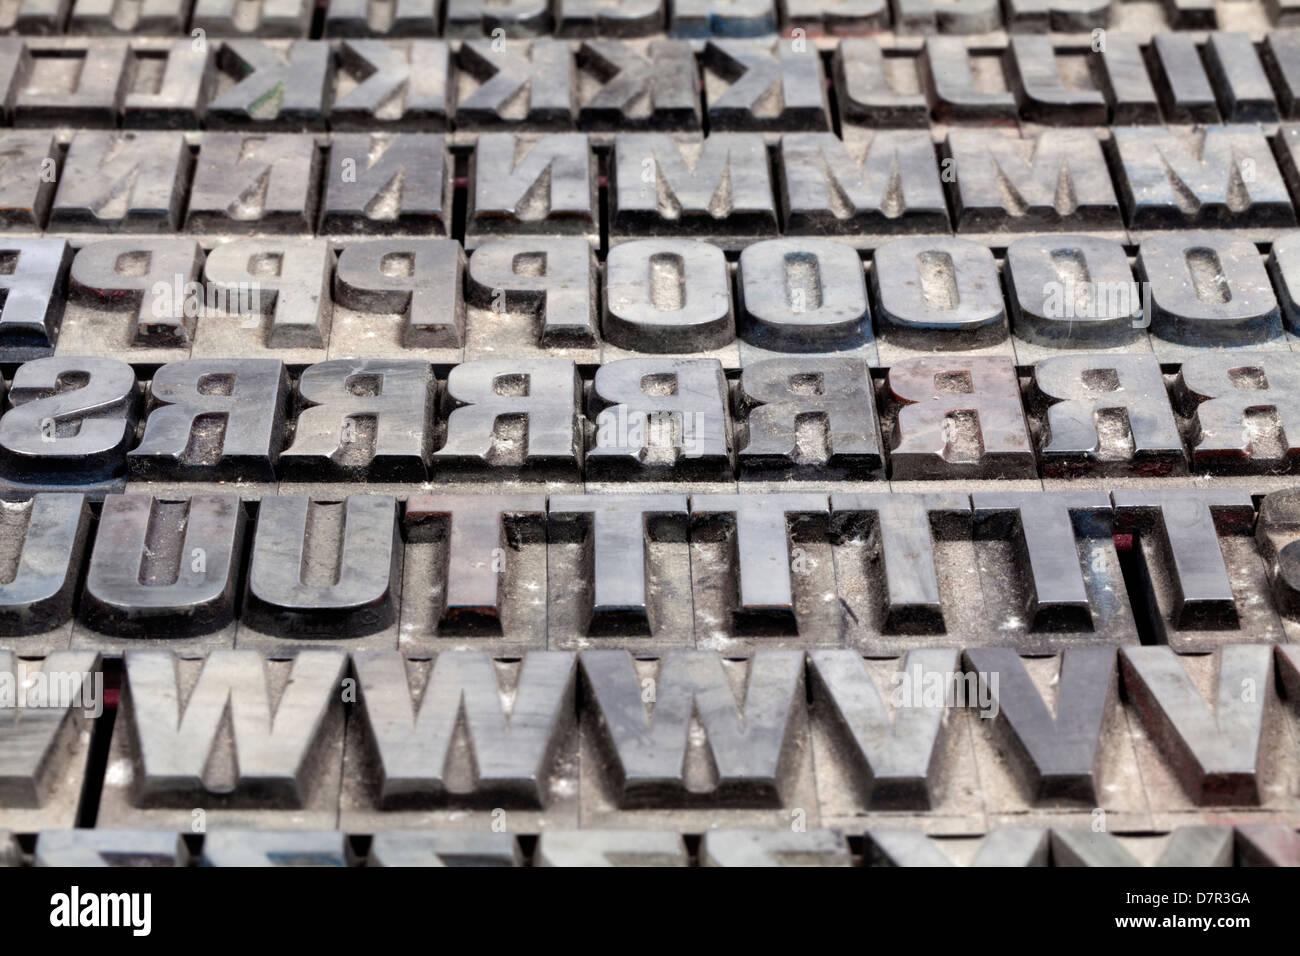 metal printing setting old letters made of lead for letterpress printing